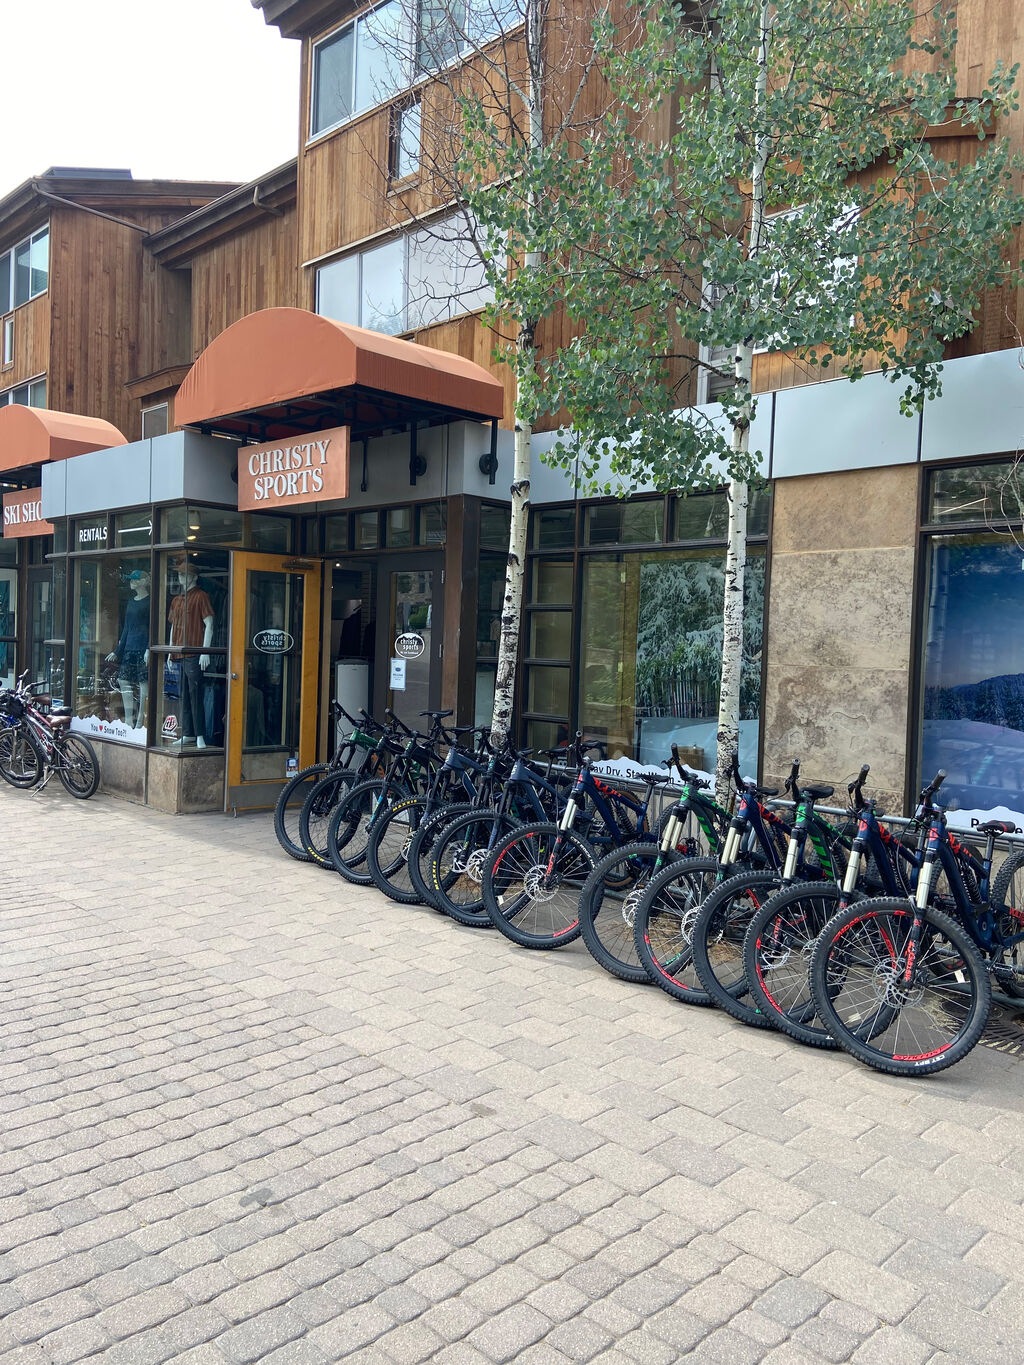 Christy Sports - Lionshead Village, Vail Storefront in the summer with rentable bikes out front